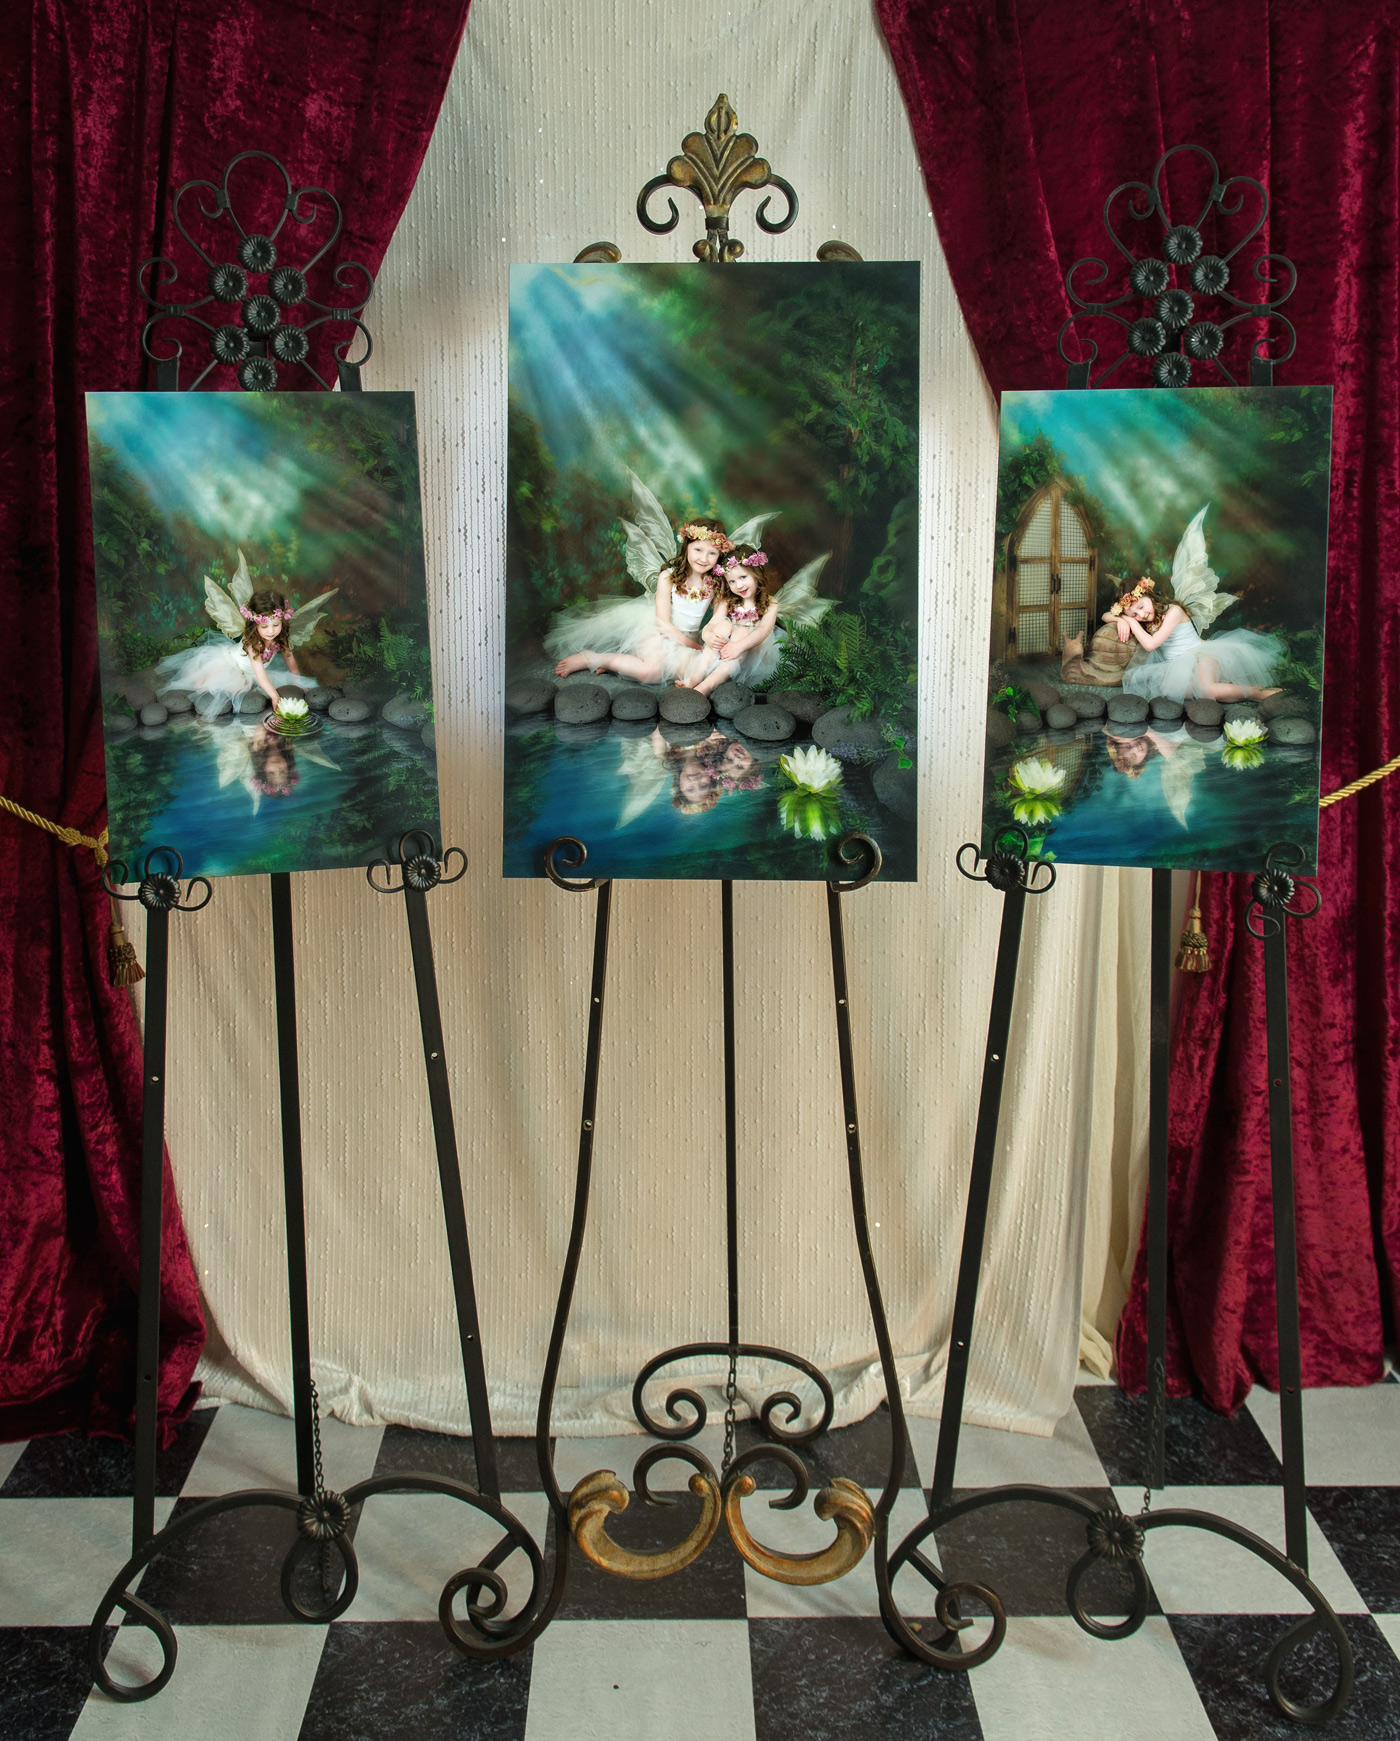 I absolutely had to put these portraits on easels and take a photo of them as soon as they arrived.  Not sure if the photo does the justice to how incredibly beautiful they look together. I called it 'Magic, Love and Harmony'... :)